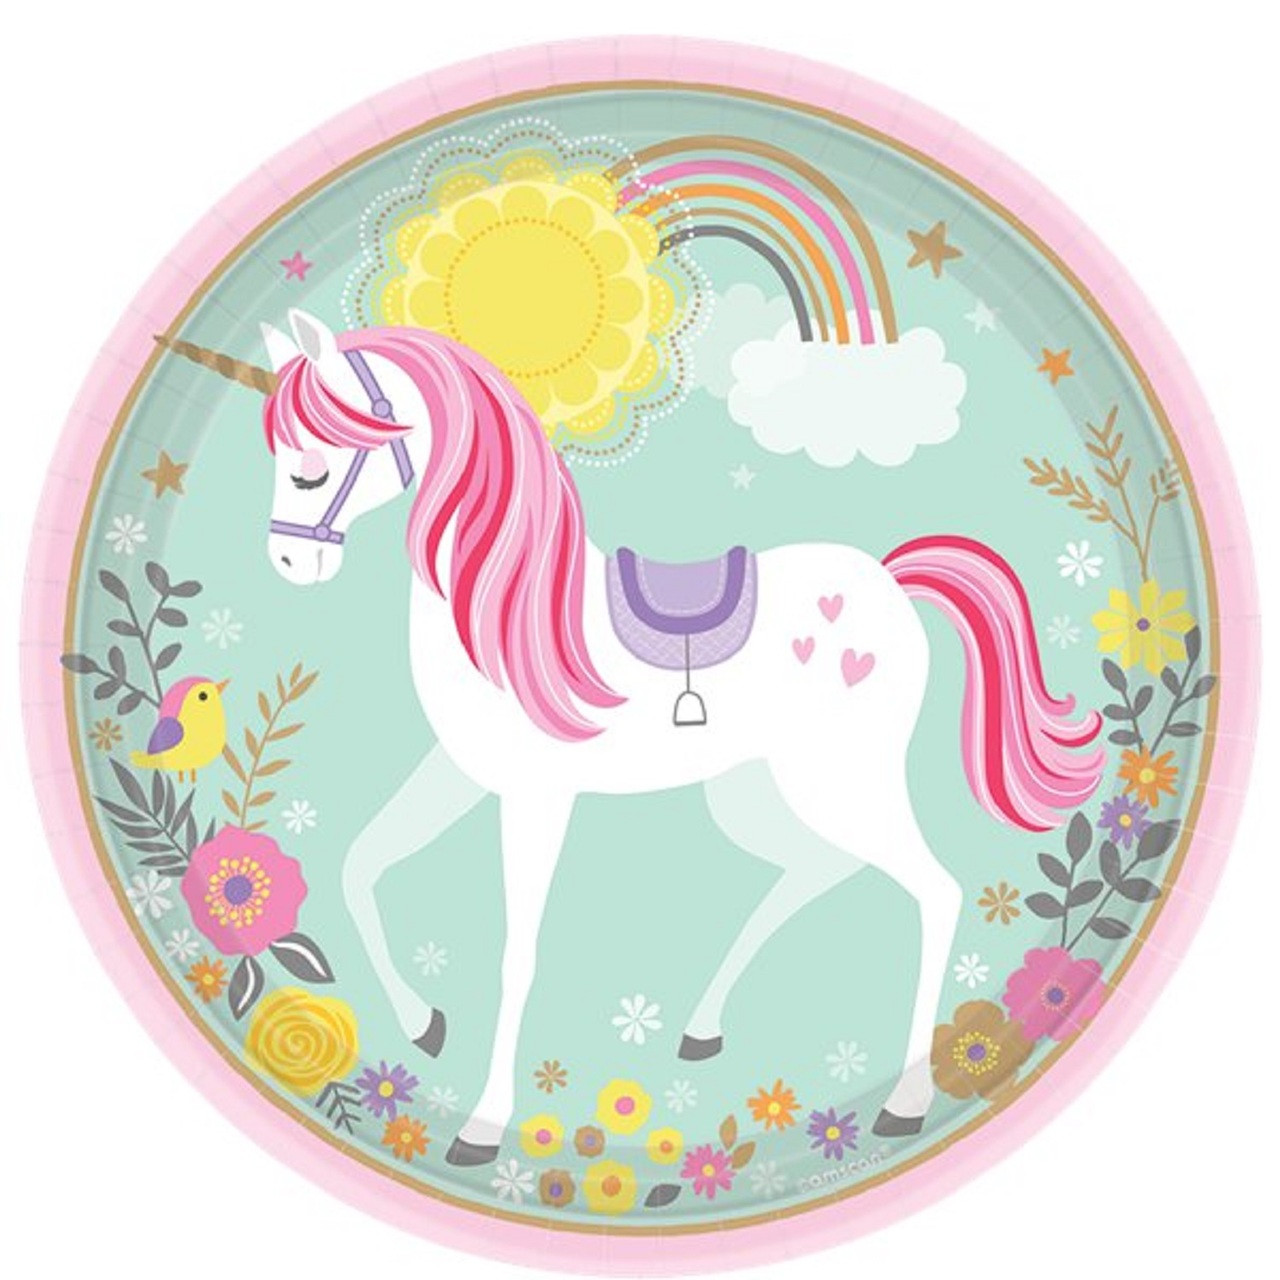 Magical Unicorn Party Plates Fancy Me Limited